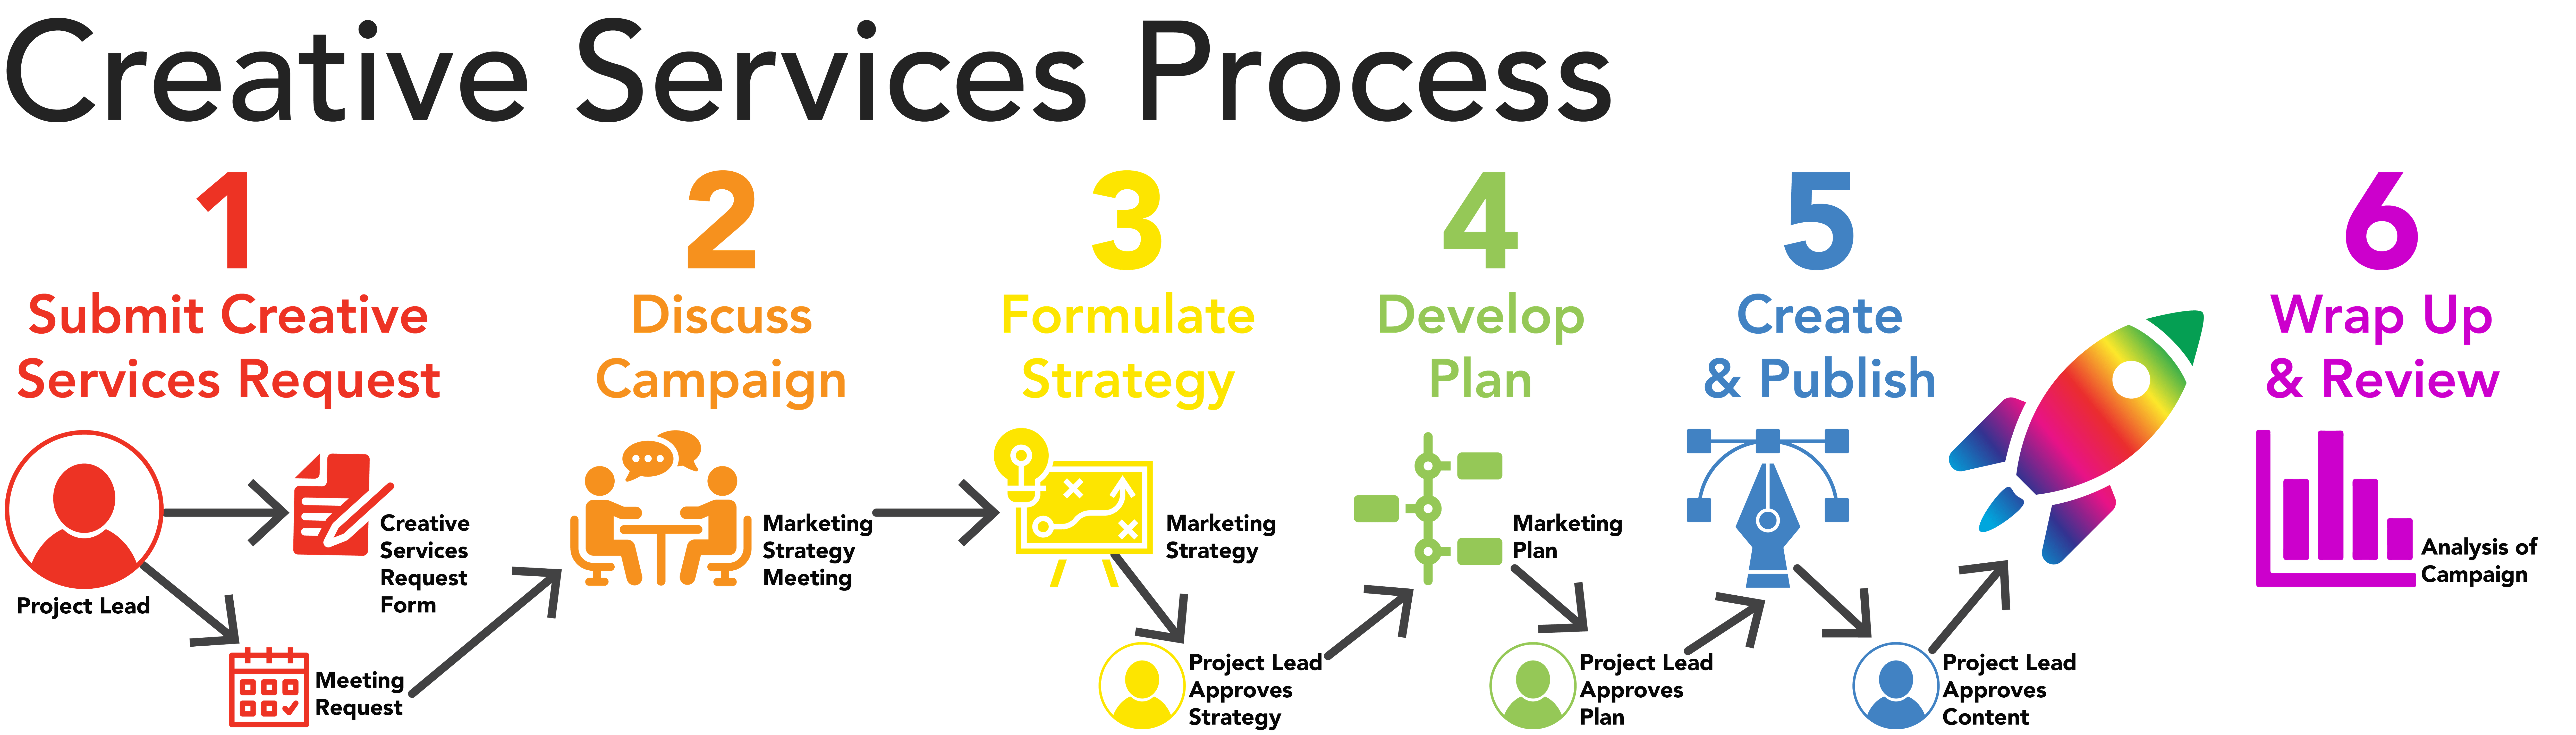 Infographic showing the creative services process in more detail